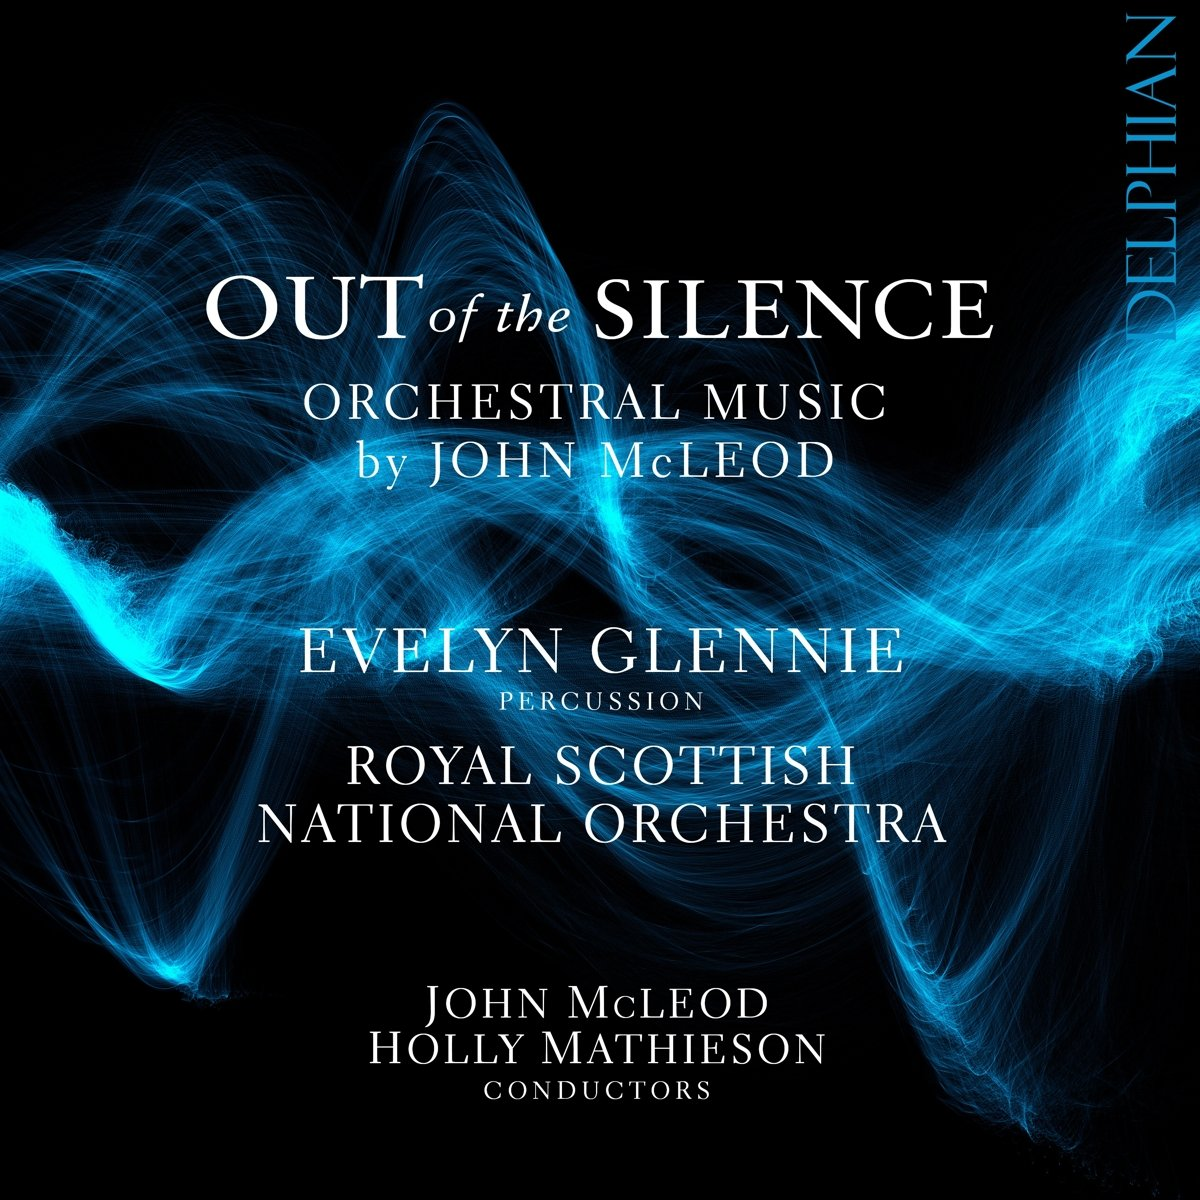 Out of the Silence - Orchestral Music by John McLeod